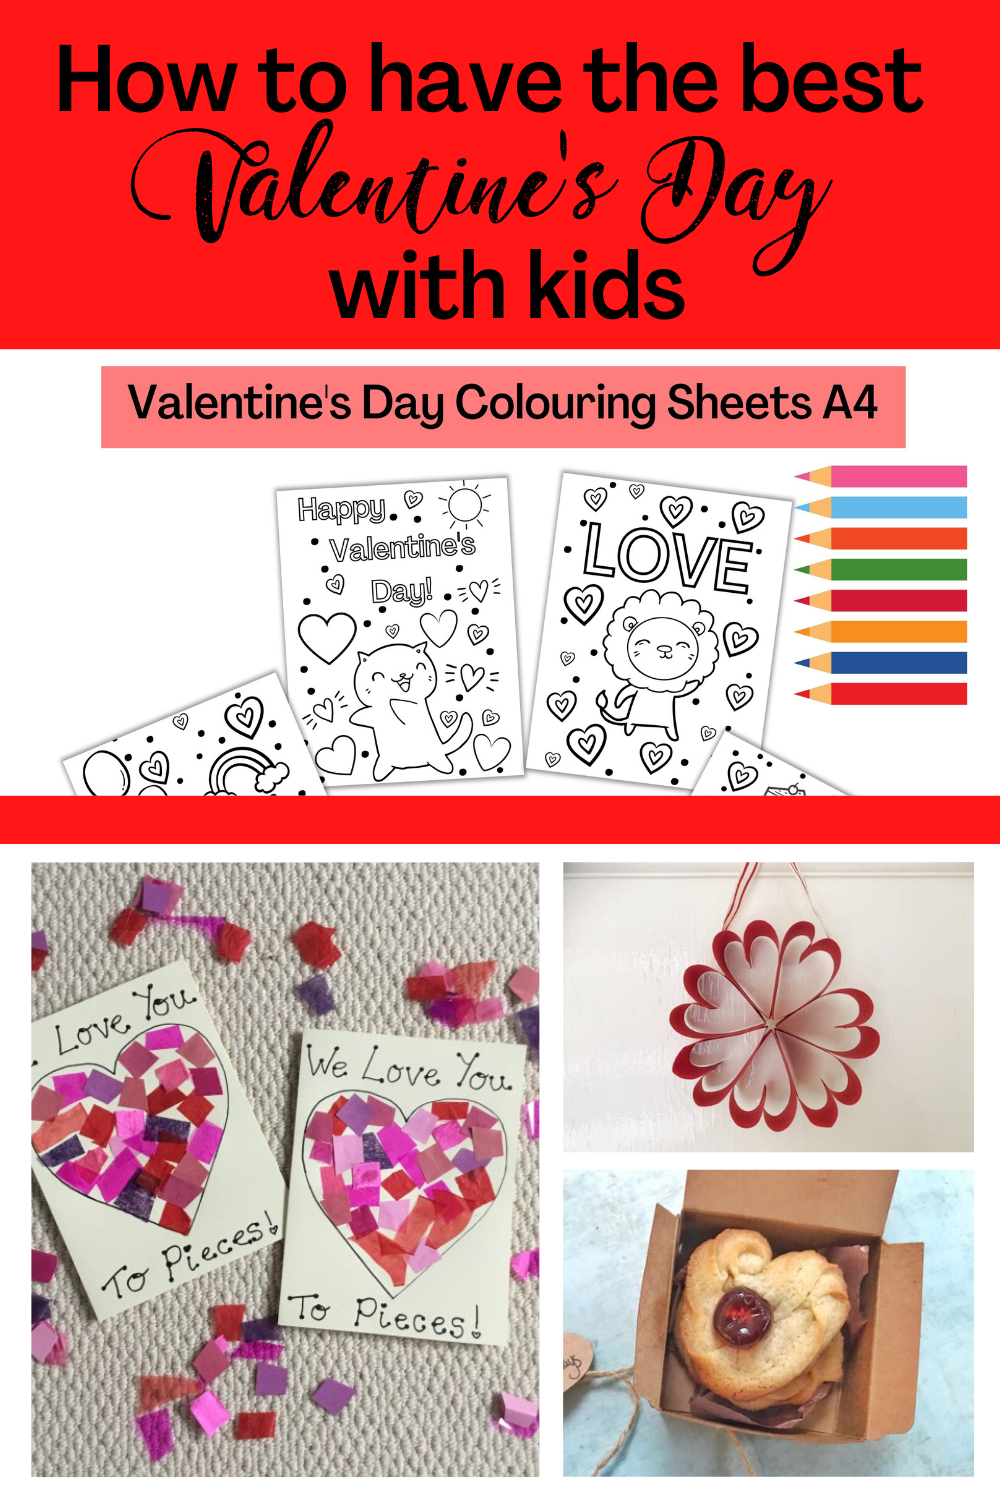 Text: How to have the best Valentine's Day with Kids